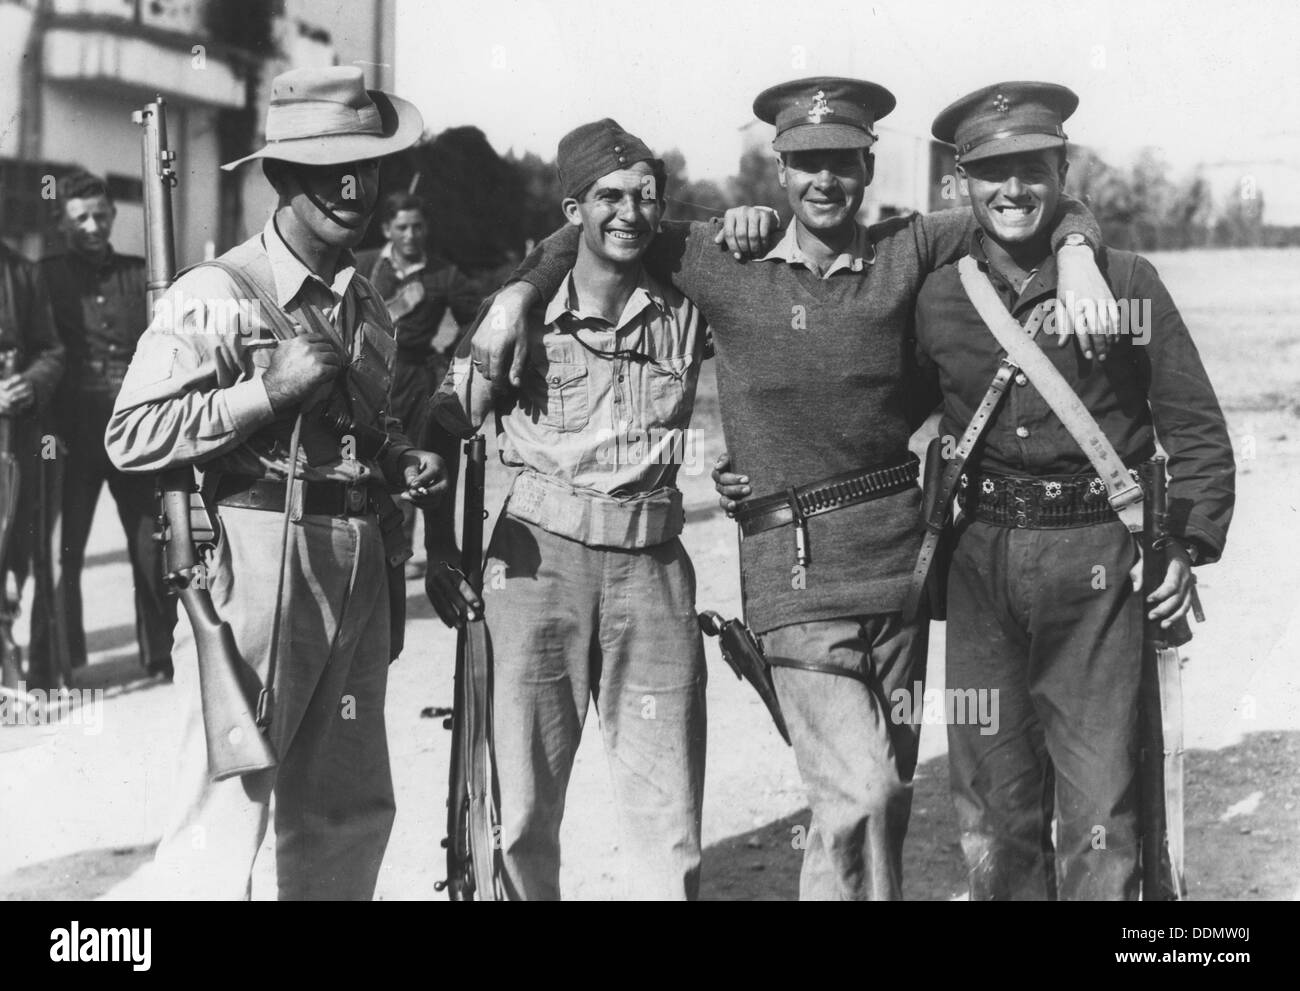 Members of the Special Night Squads in British Army uniform, Palestine, c1938-1939. - Stock Image